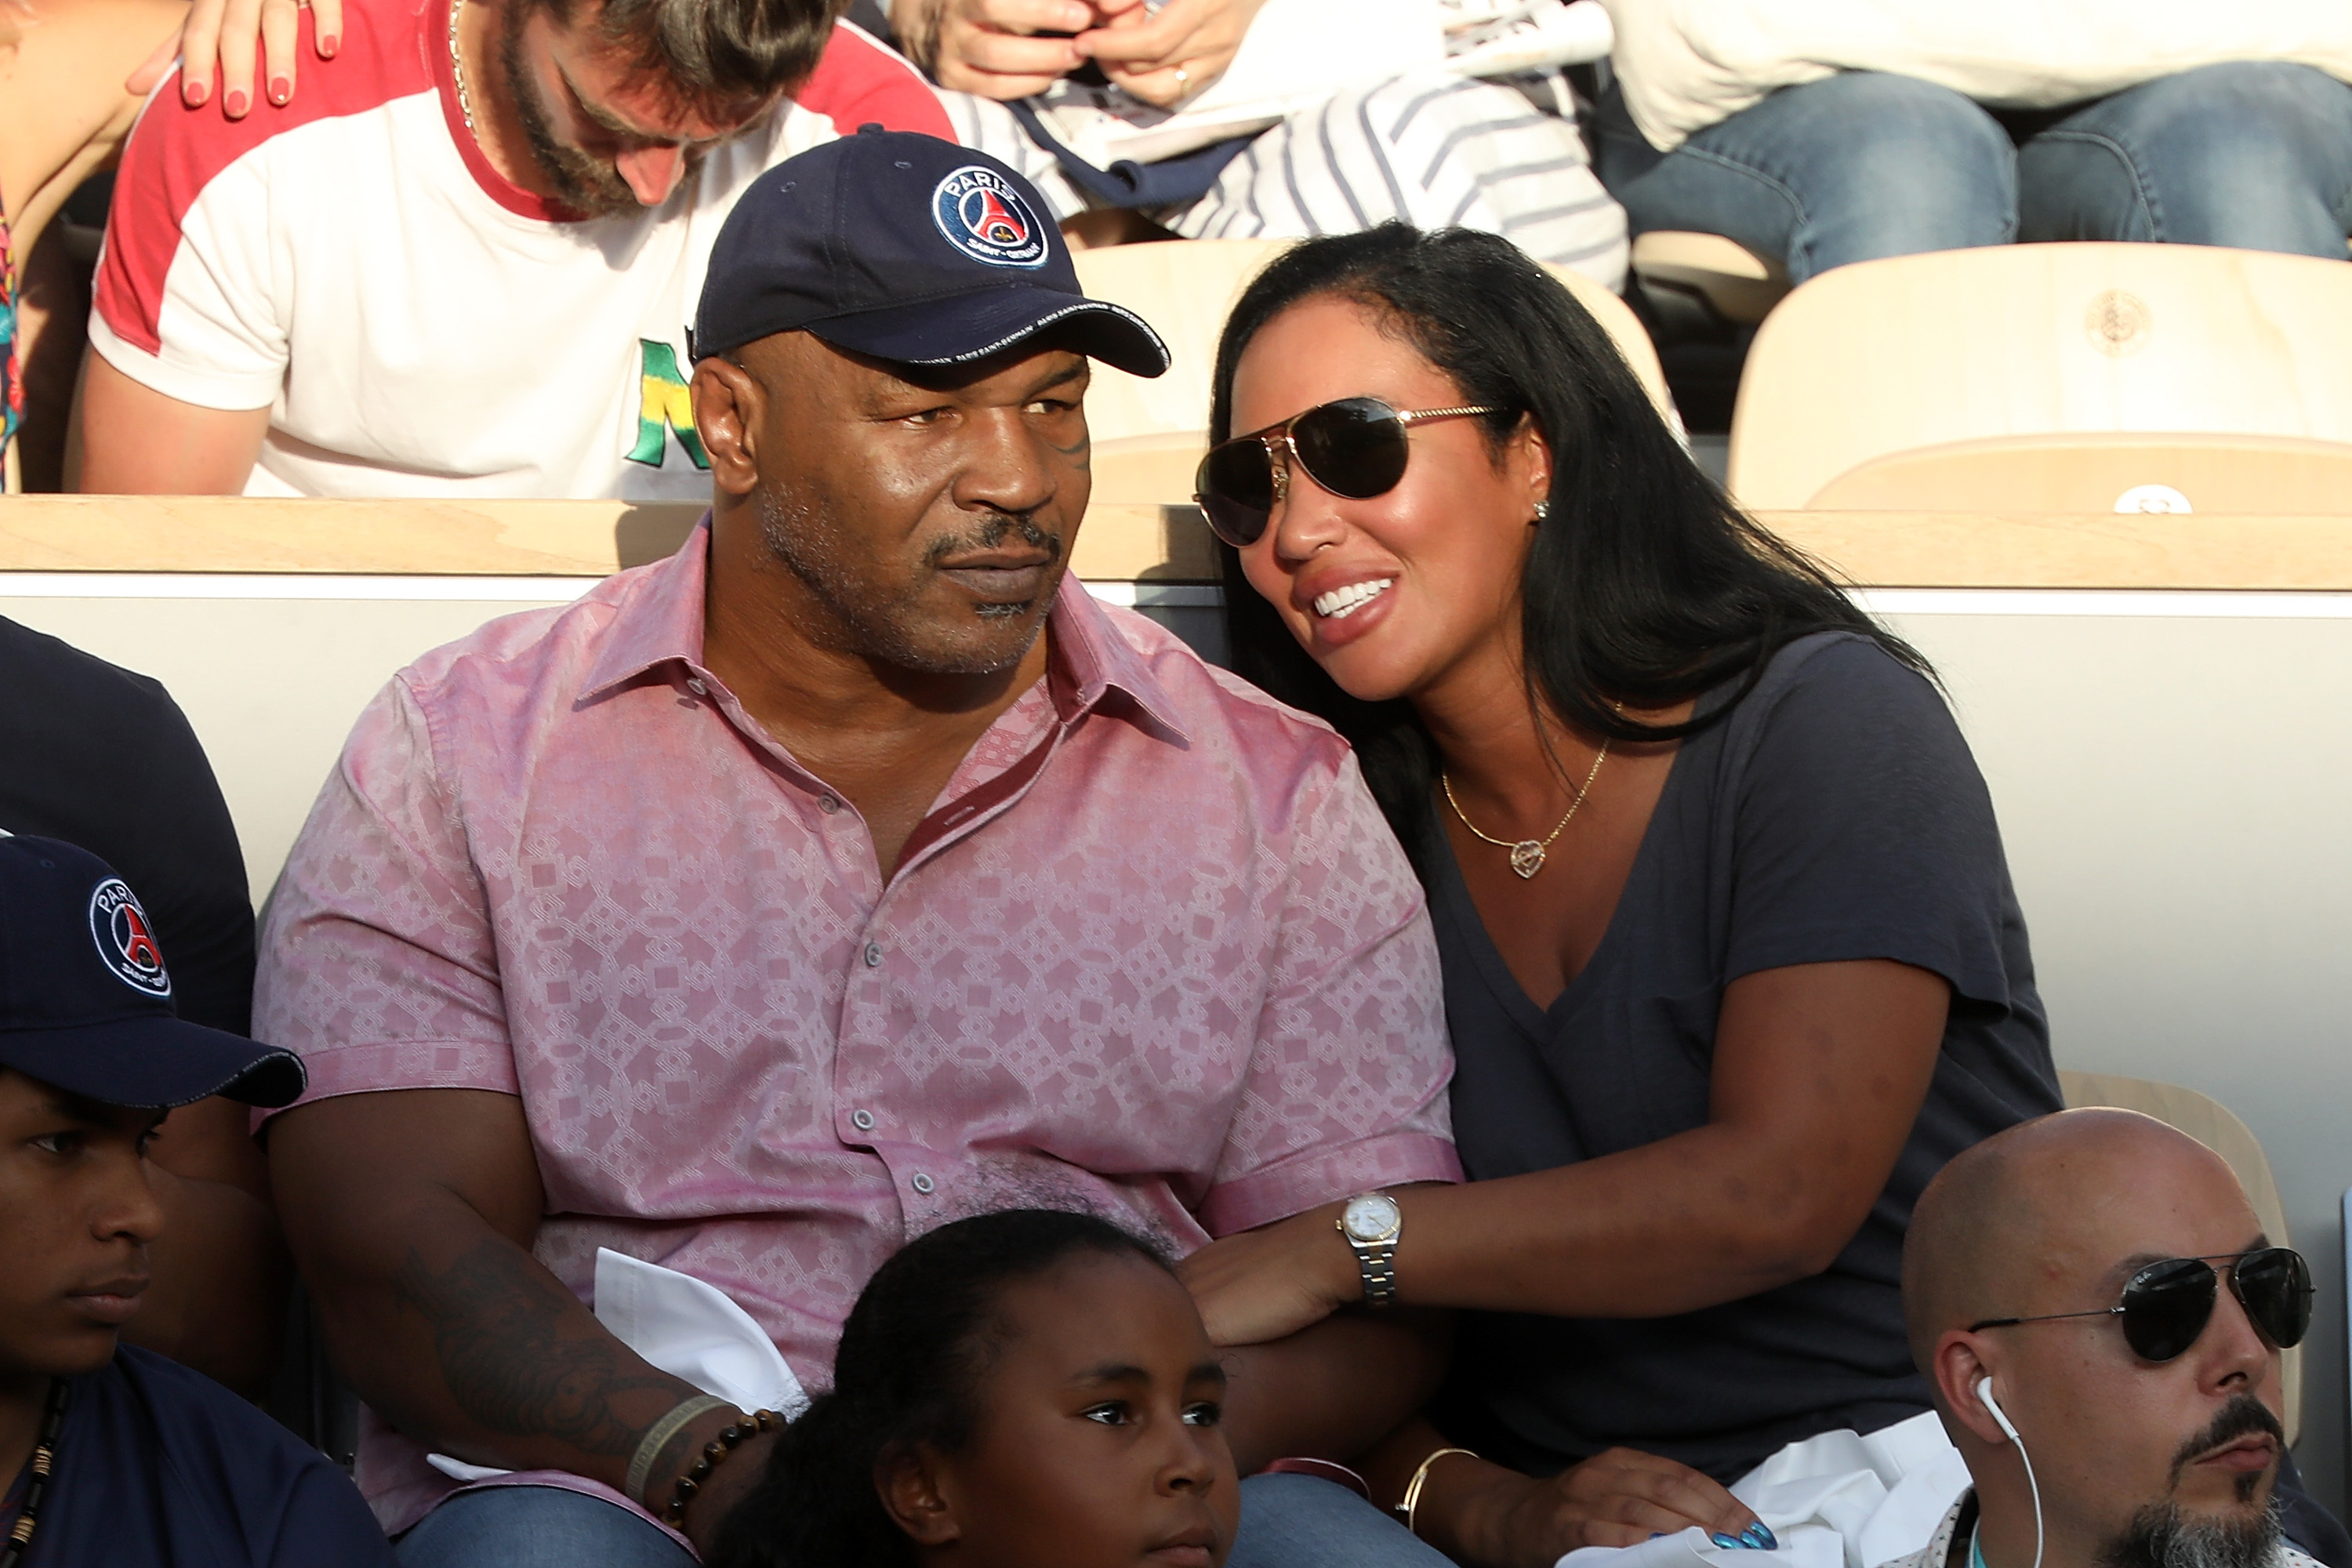 Mike Tyson on Serena Williams: 'I Don't Want to Get in the Ring With This GOAT'